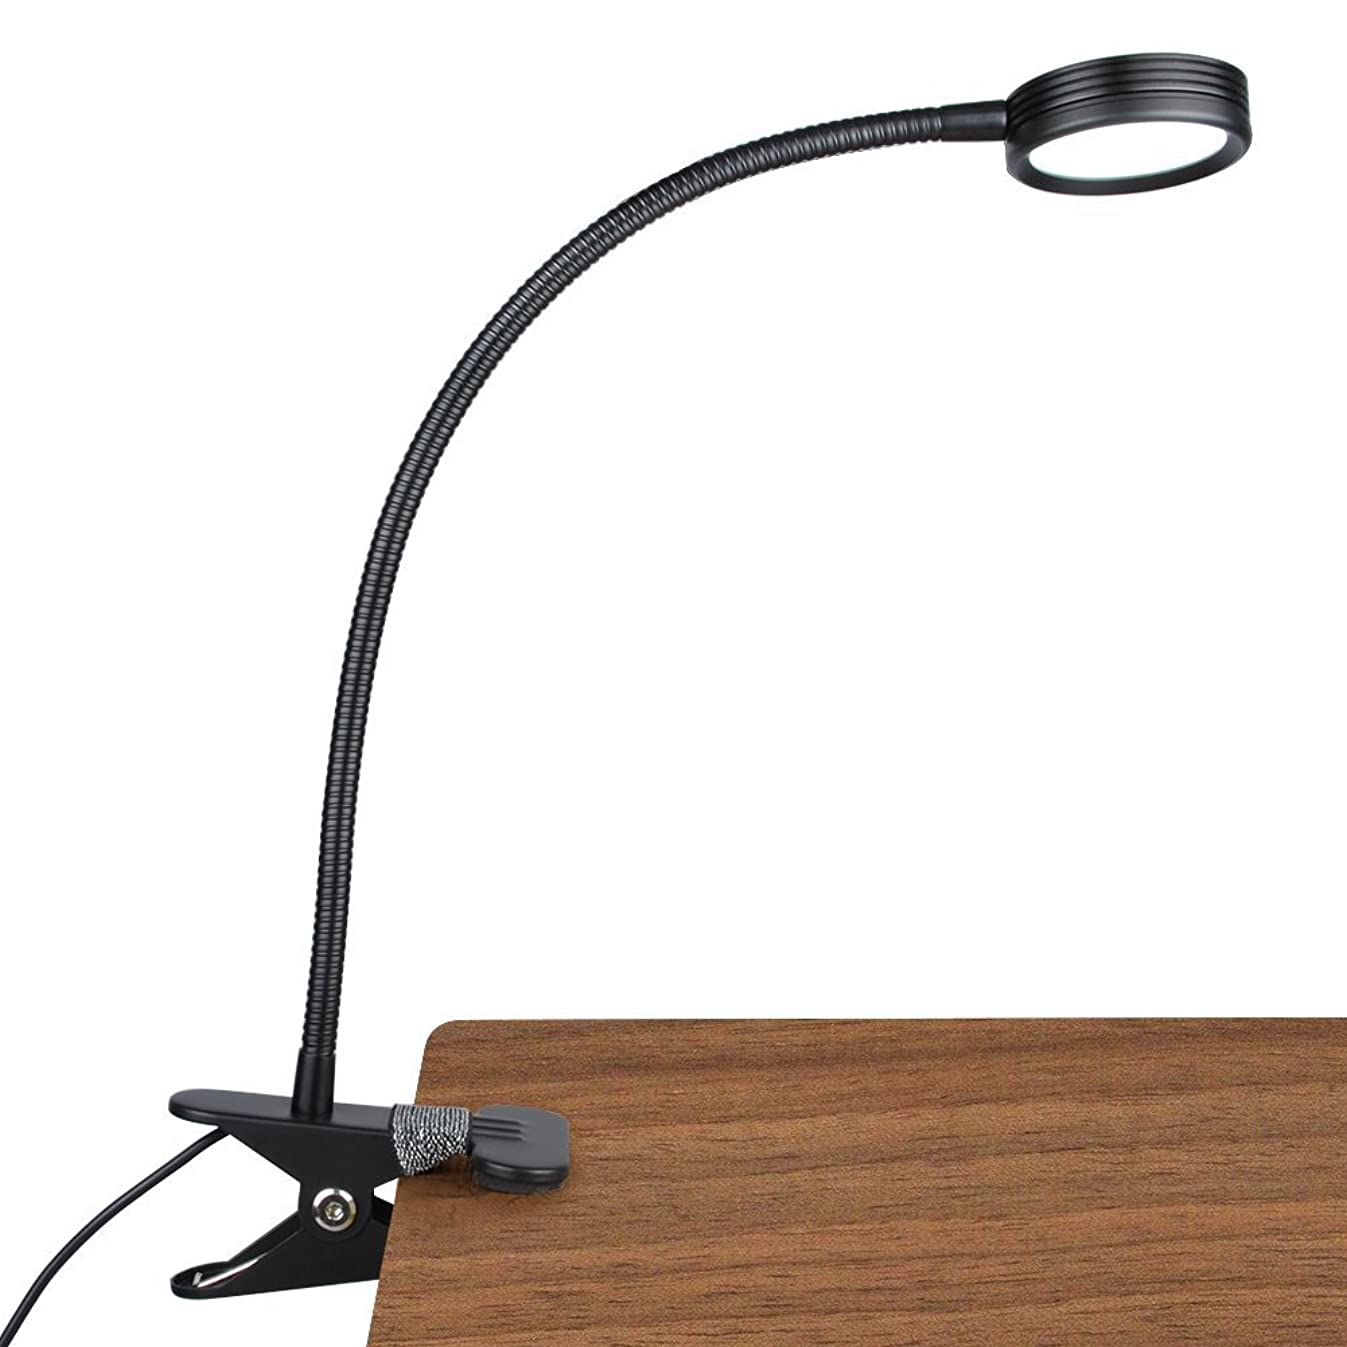 LEPOWER New Version Metal Clip On Light, Flexible Bed Light with 3 Colors x Stepless Adjustable Brightness, Eye Caring Reading Light for Desk, Bed Headboard and Computers(Black)-No AC Adapter